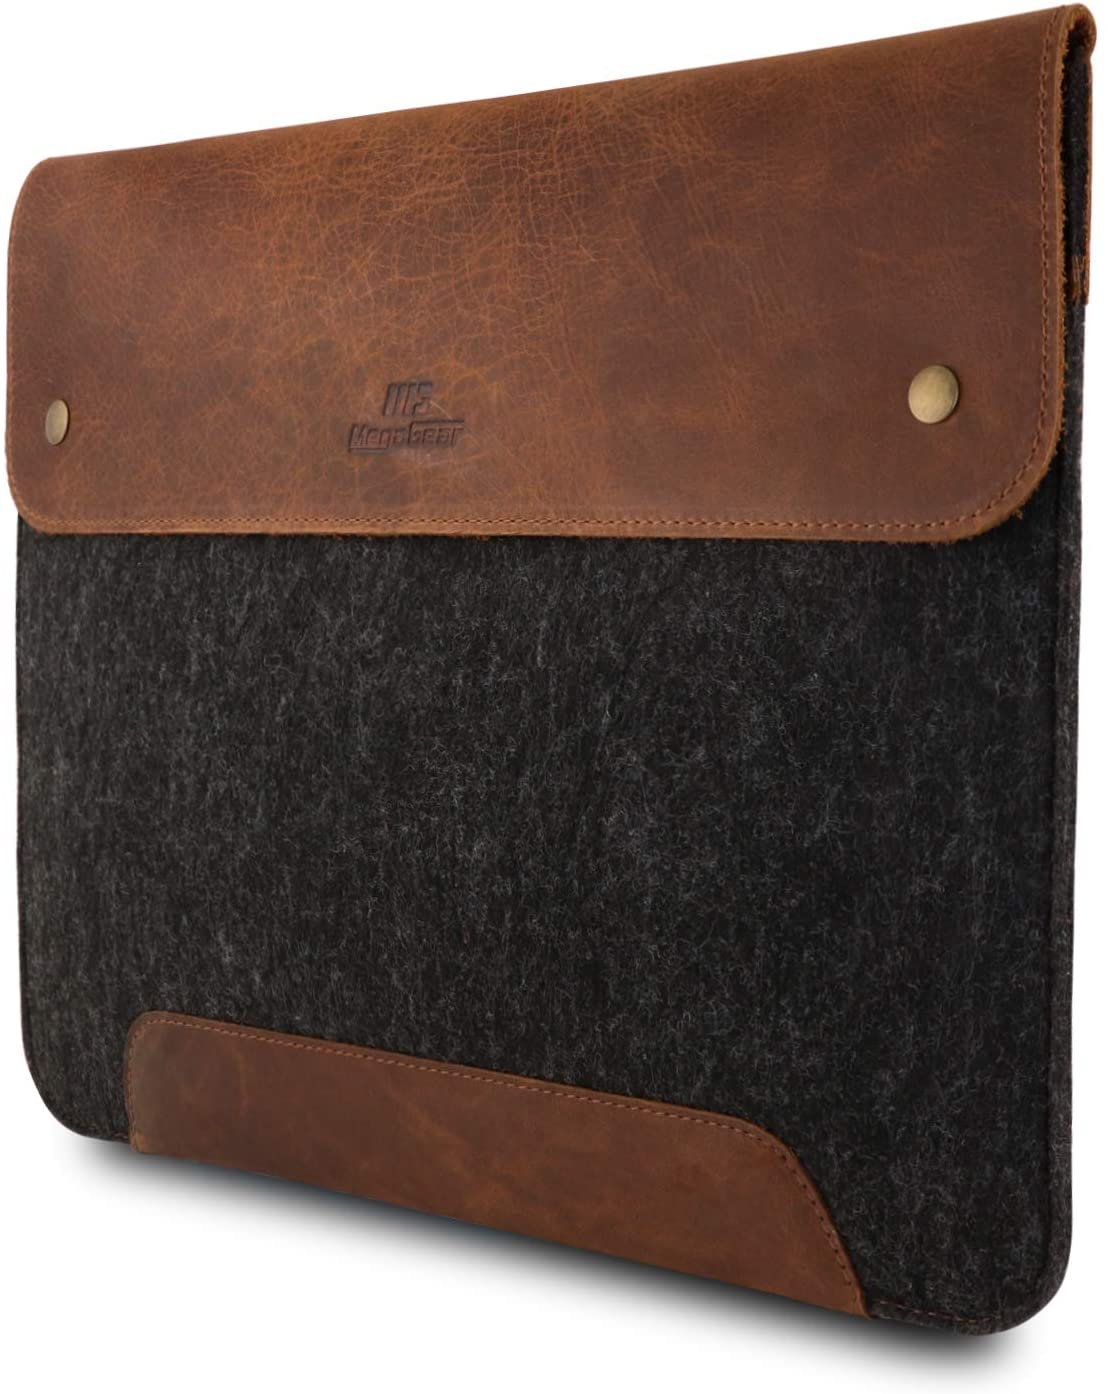 MegaGear Genuine Leather and Fleece MacBook Bag 13.3 Inch